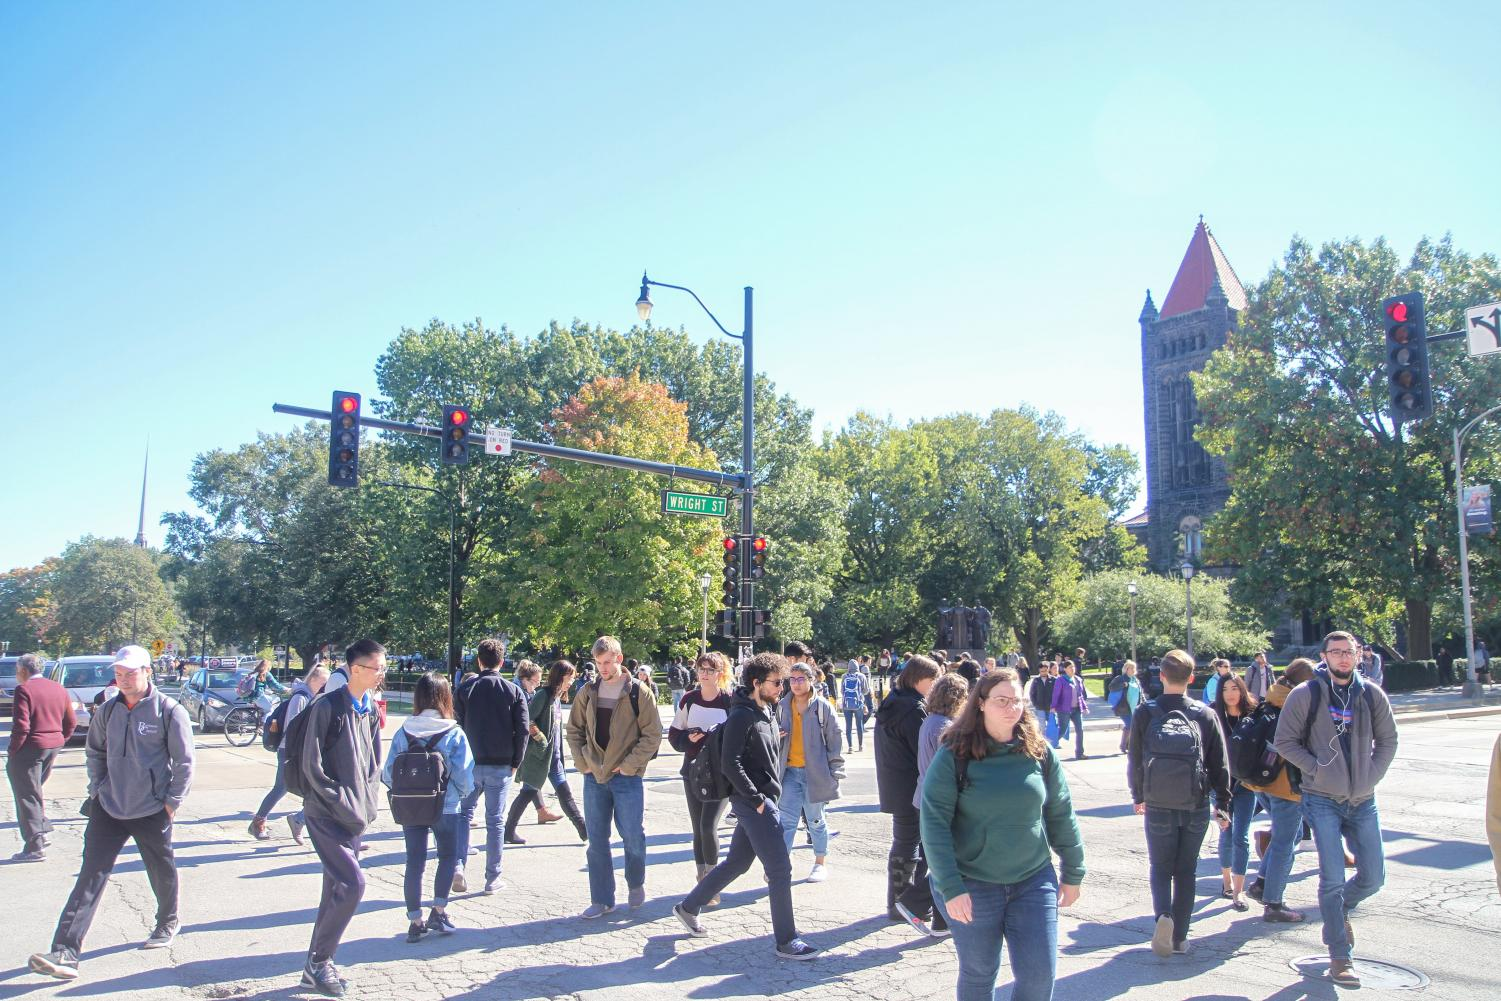 Students crossing Green and Wright to get to their morning classes on October 18, 2018.